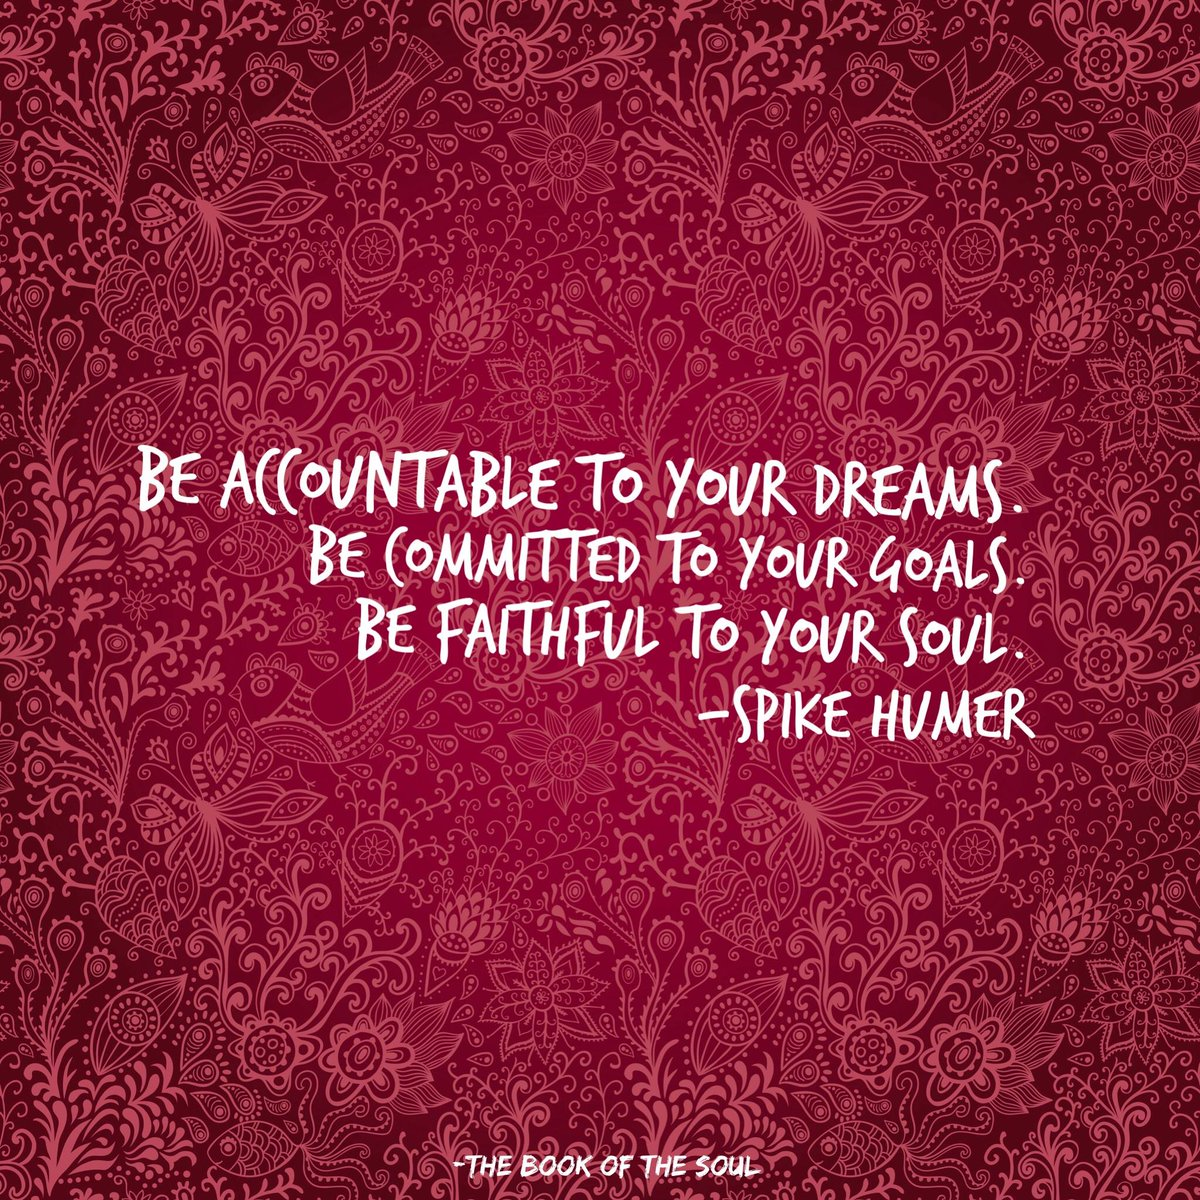 """""""Be accountable to your dreams. Be committed to your goals. Be faithful to your soul."""" Spike Humer https://t.co/9U2xhUV18z"""